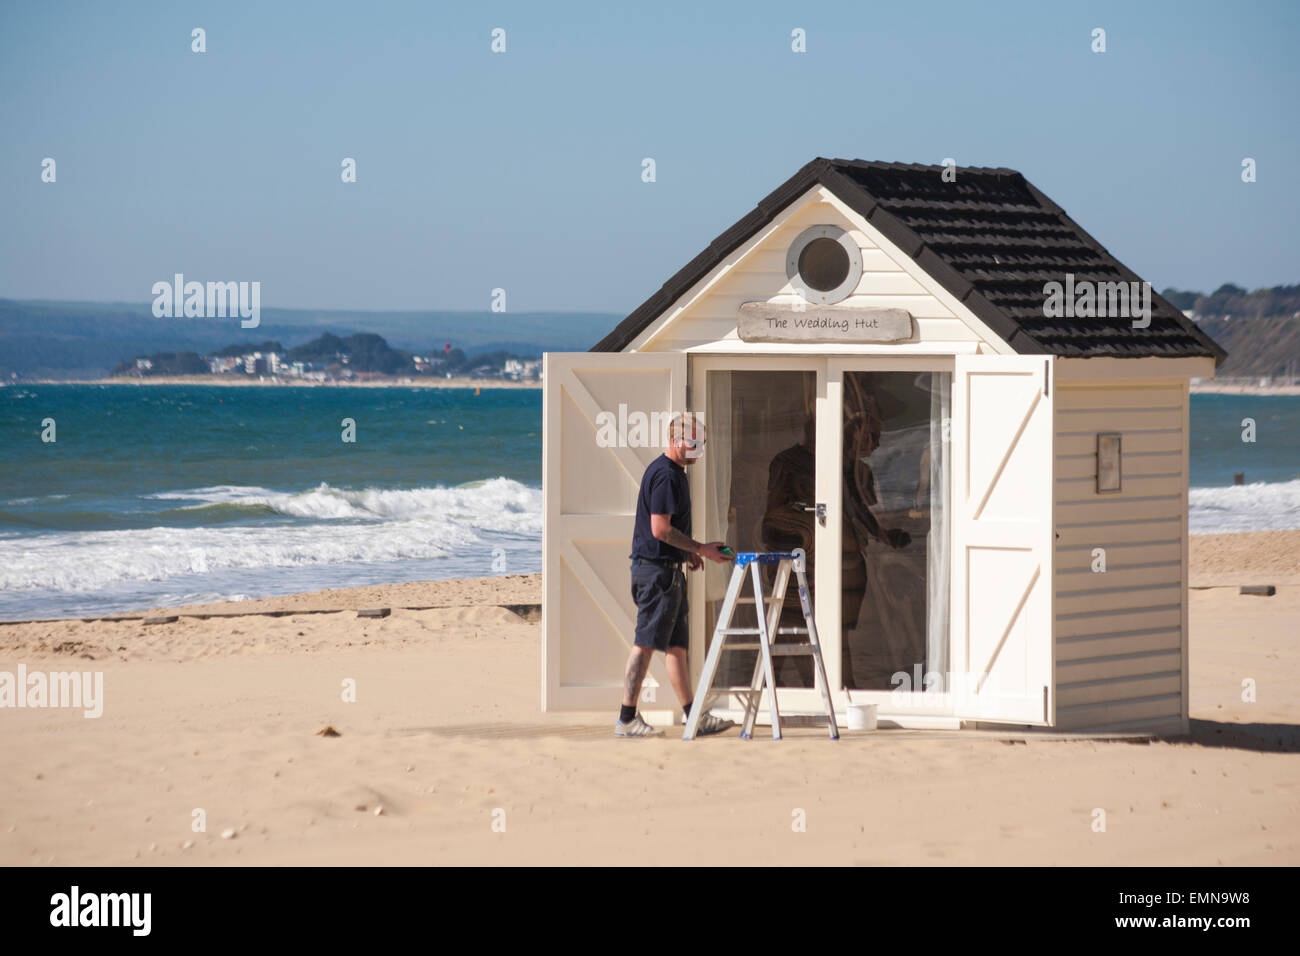 Bournemouth, Dorset, UK. 22nd April, 2015. UK Weather: sunny day at Bournemouth beaches, as visitors make the most - Stock Image